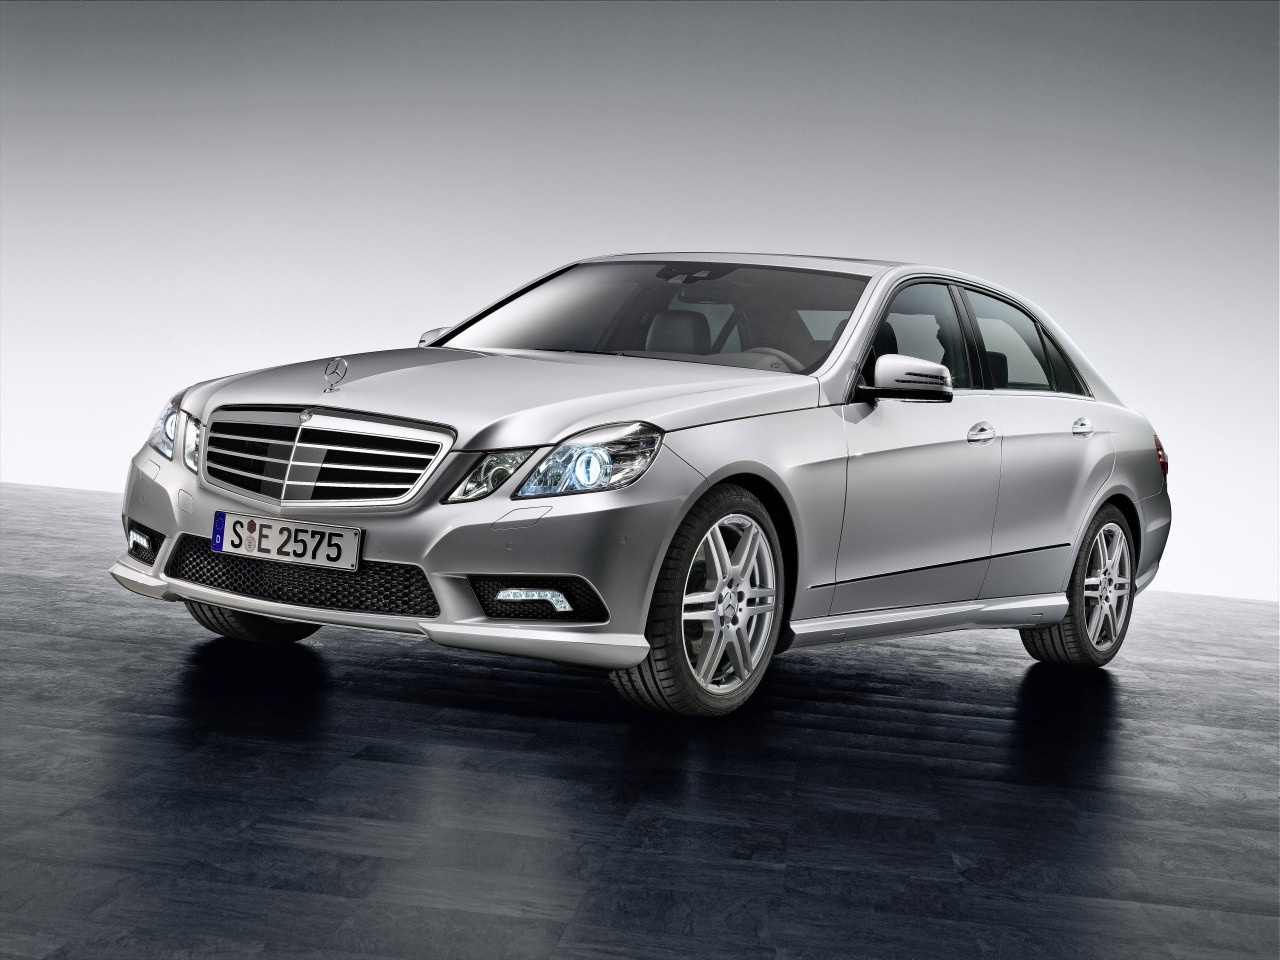 2010 Mercedes-Benz CL-Class Pictures